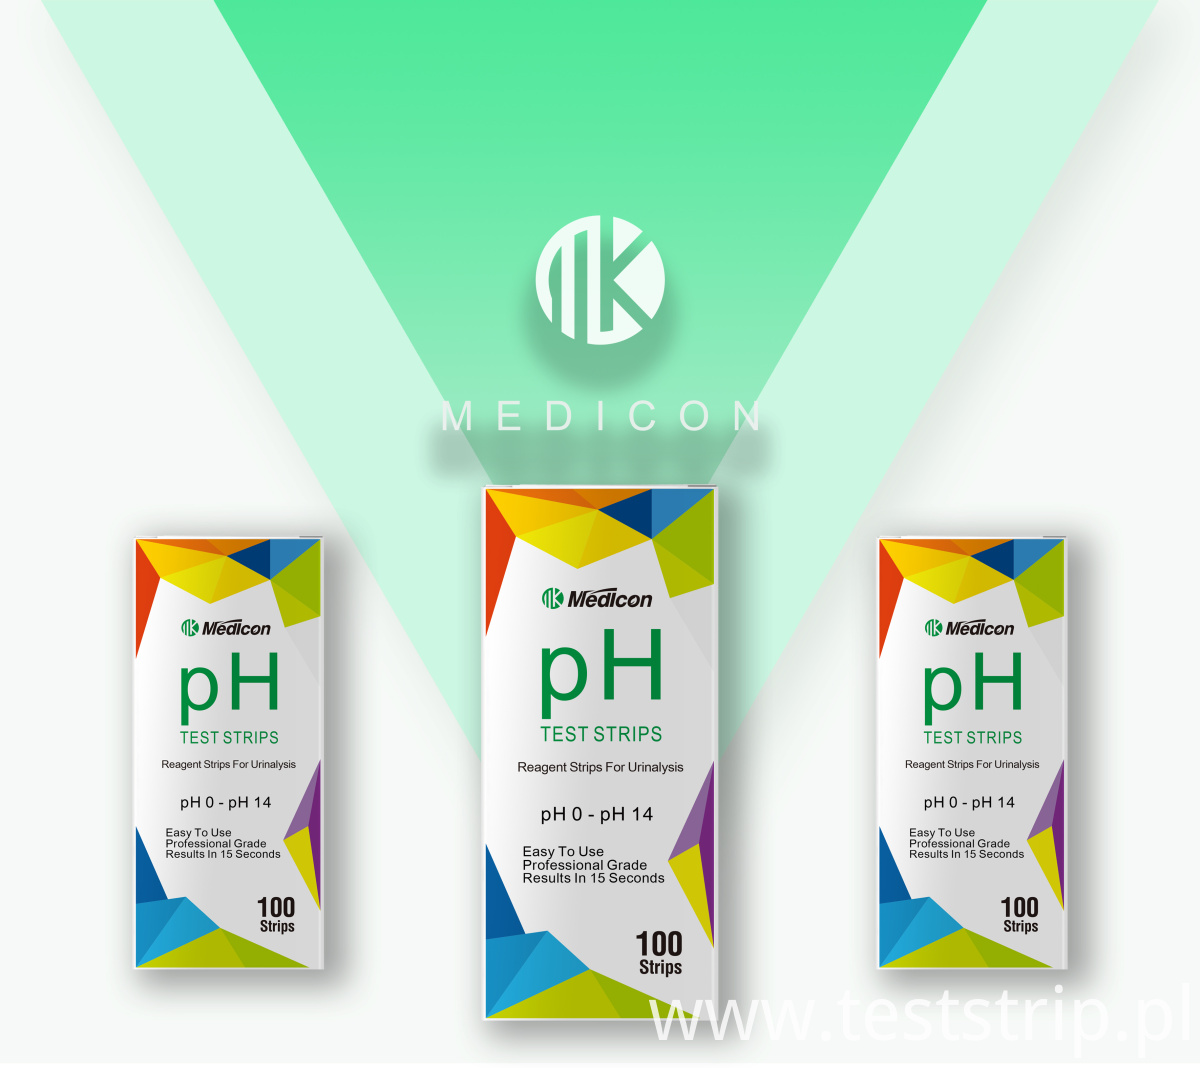 ph test strips 4.5-9.0